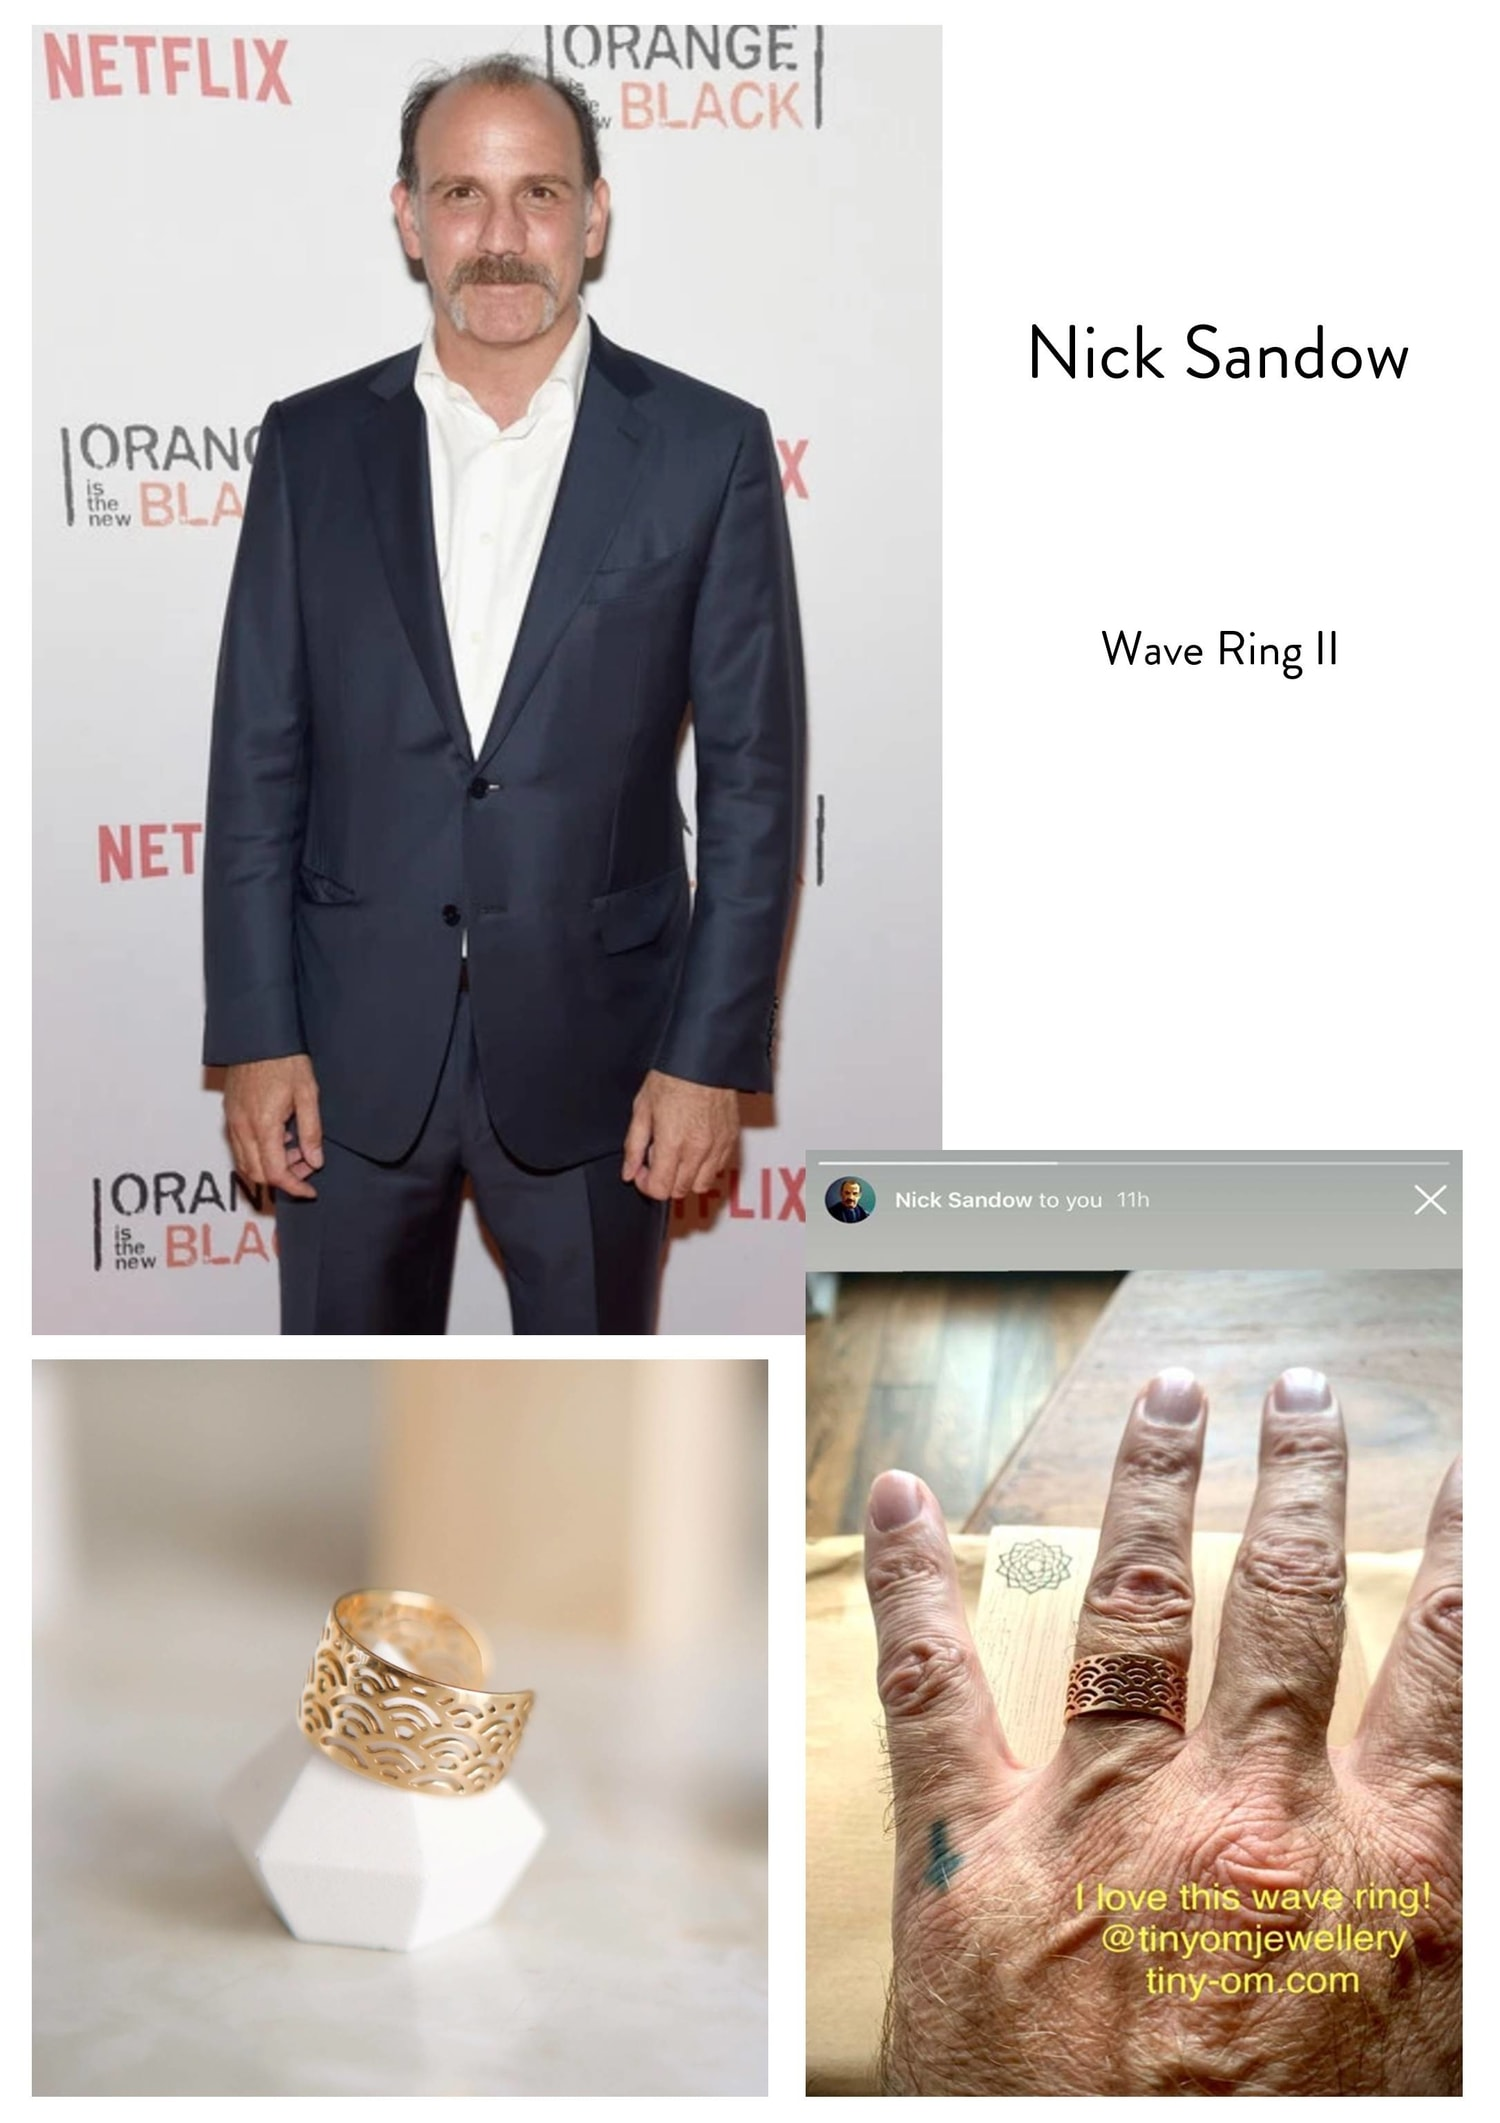 nick sandow wave ring tinyom